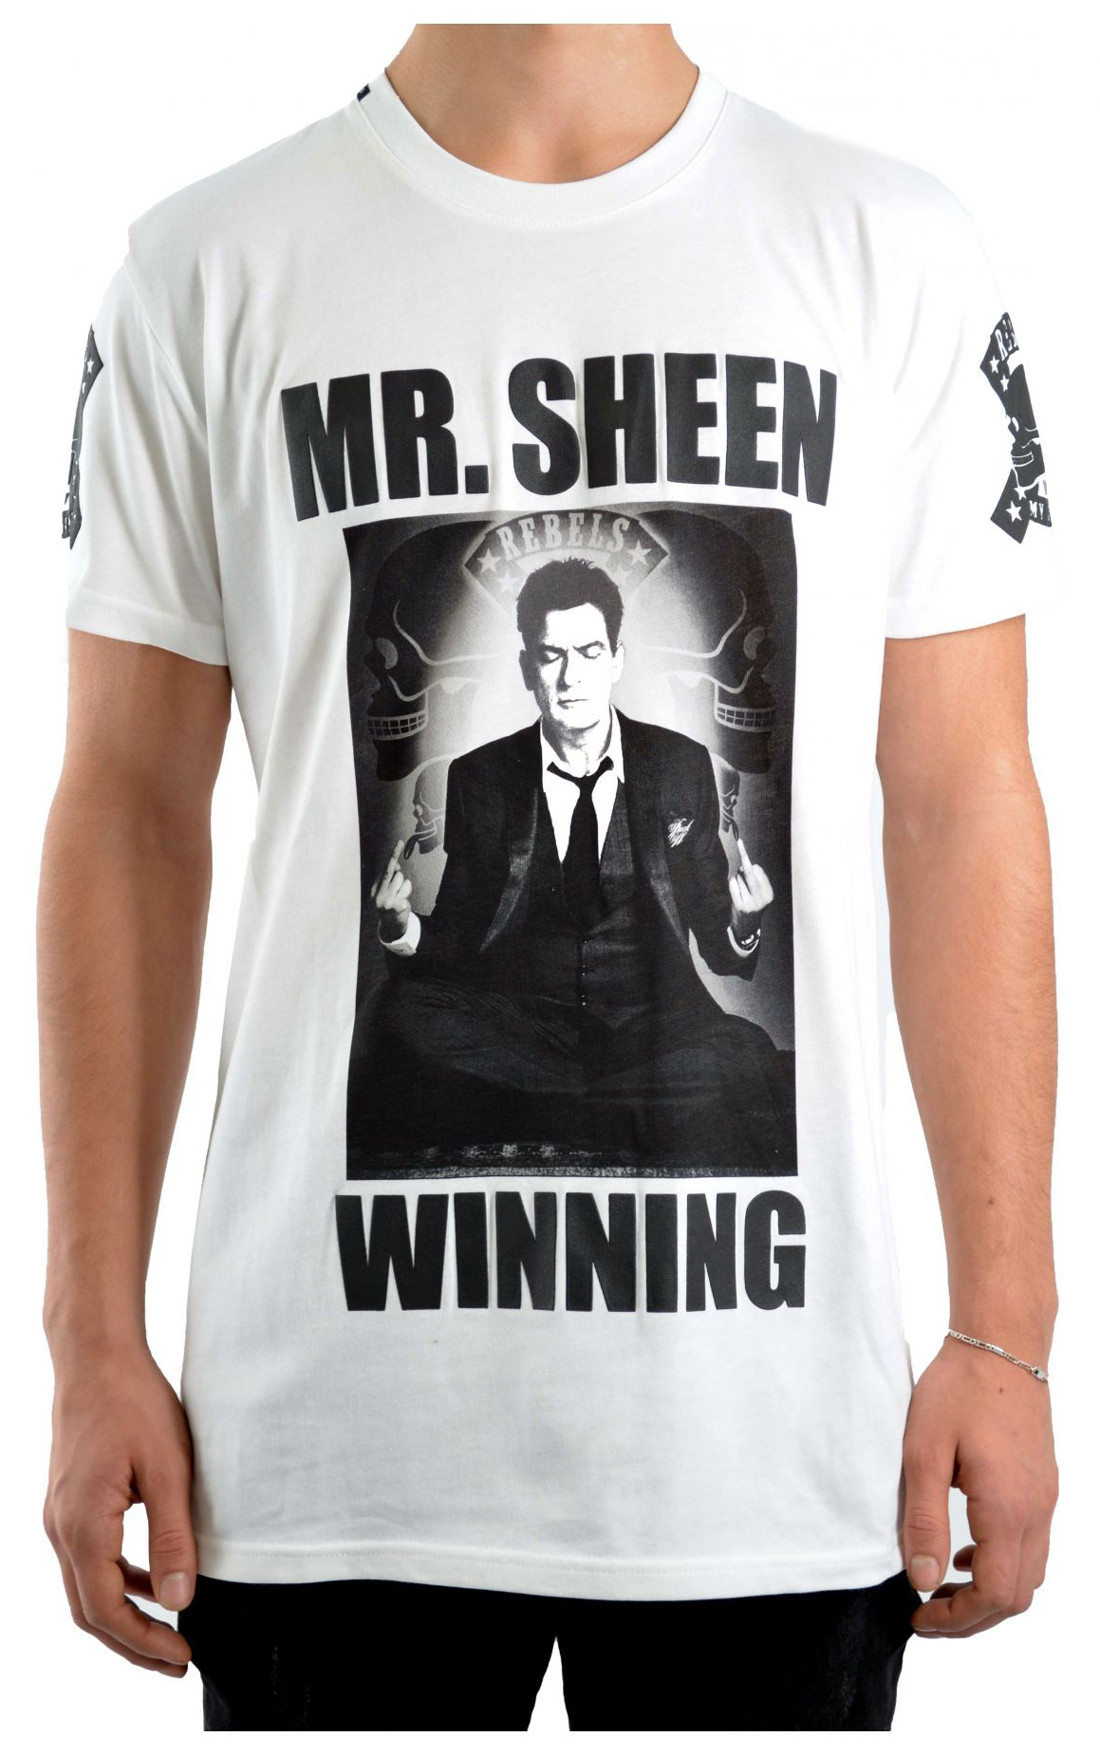 Sheen online clothing